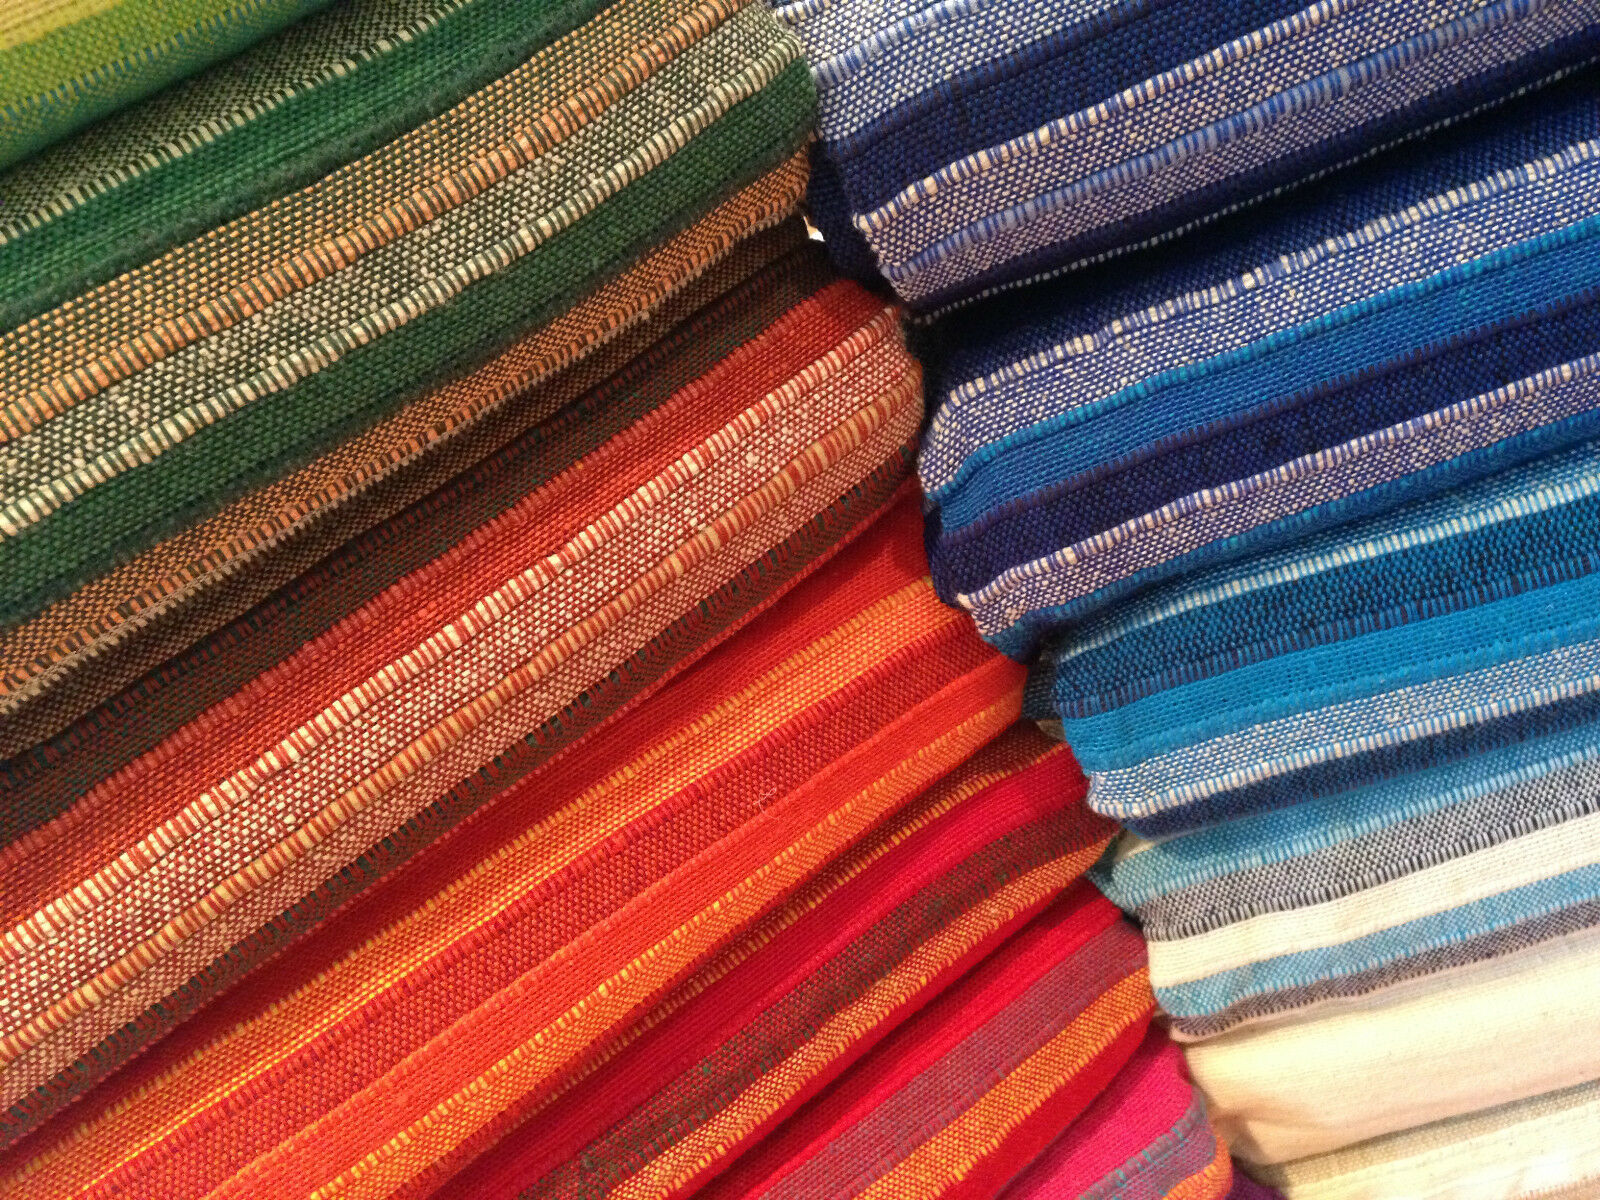 Indian Raj put Cotton Bedspread Sofa Throws SingleDouble  : Indian Raj put Cotton Bedspread Sofa Throws Single Double Superking Throw from ie.picclick.com size 1600 x 1200 jpeg 661kB